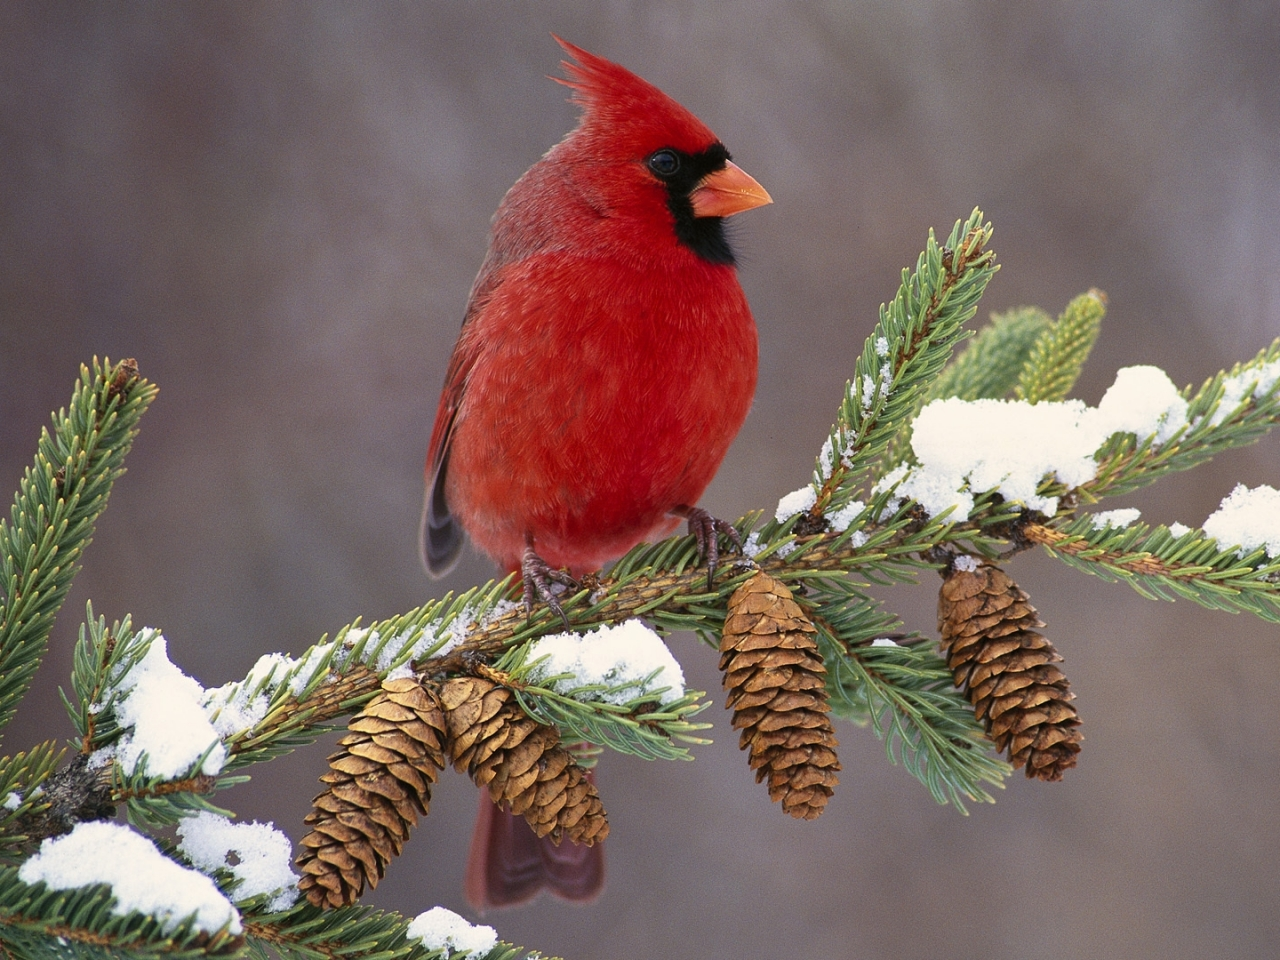 cardinal_bird_color_branch_snow_29579_1280x960_1503178031251.jpg